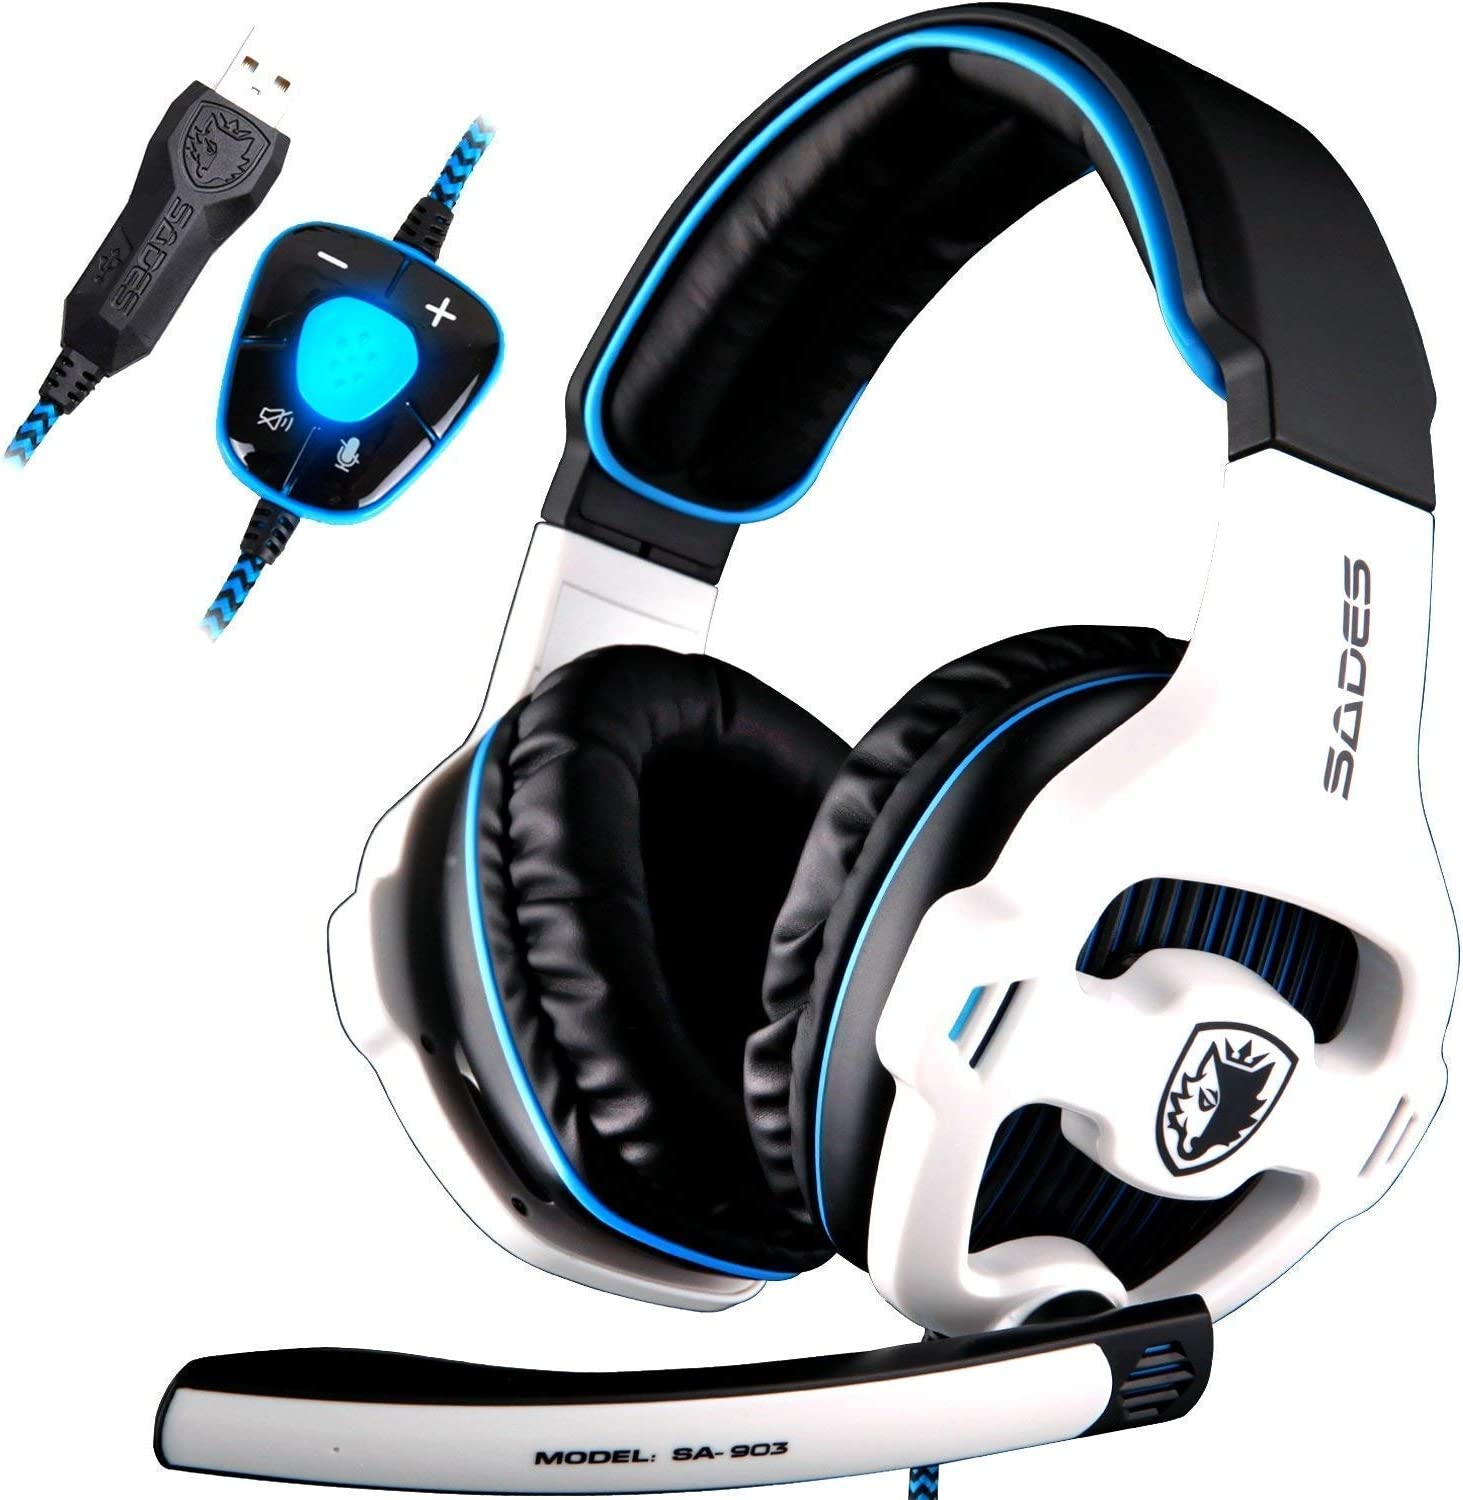 SADES SA903 gaming headset 7.1 virtual surround sound USB gaming con microfono noise cancelling gaming cuffie intelligente luce LED per PC portatile Mac (white)